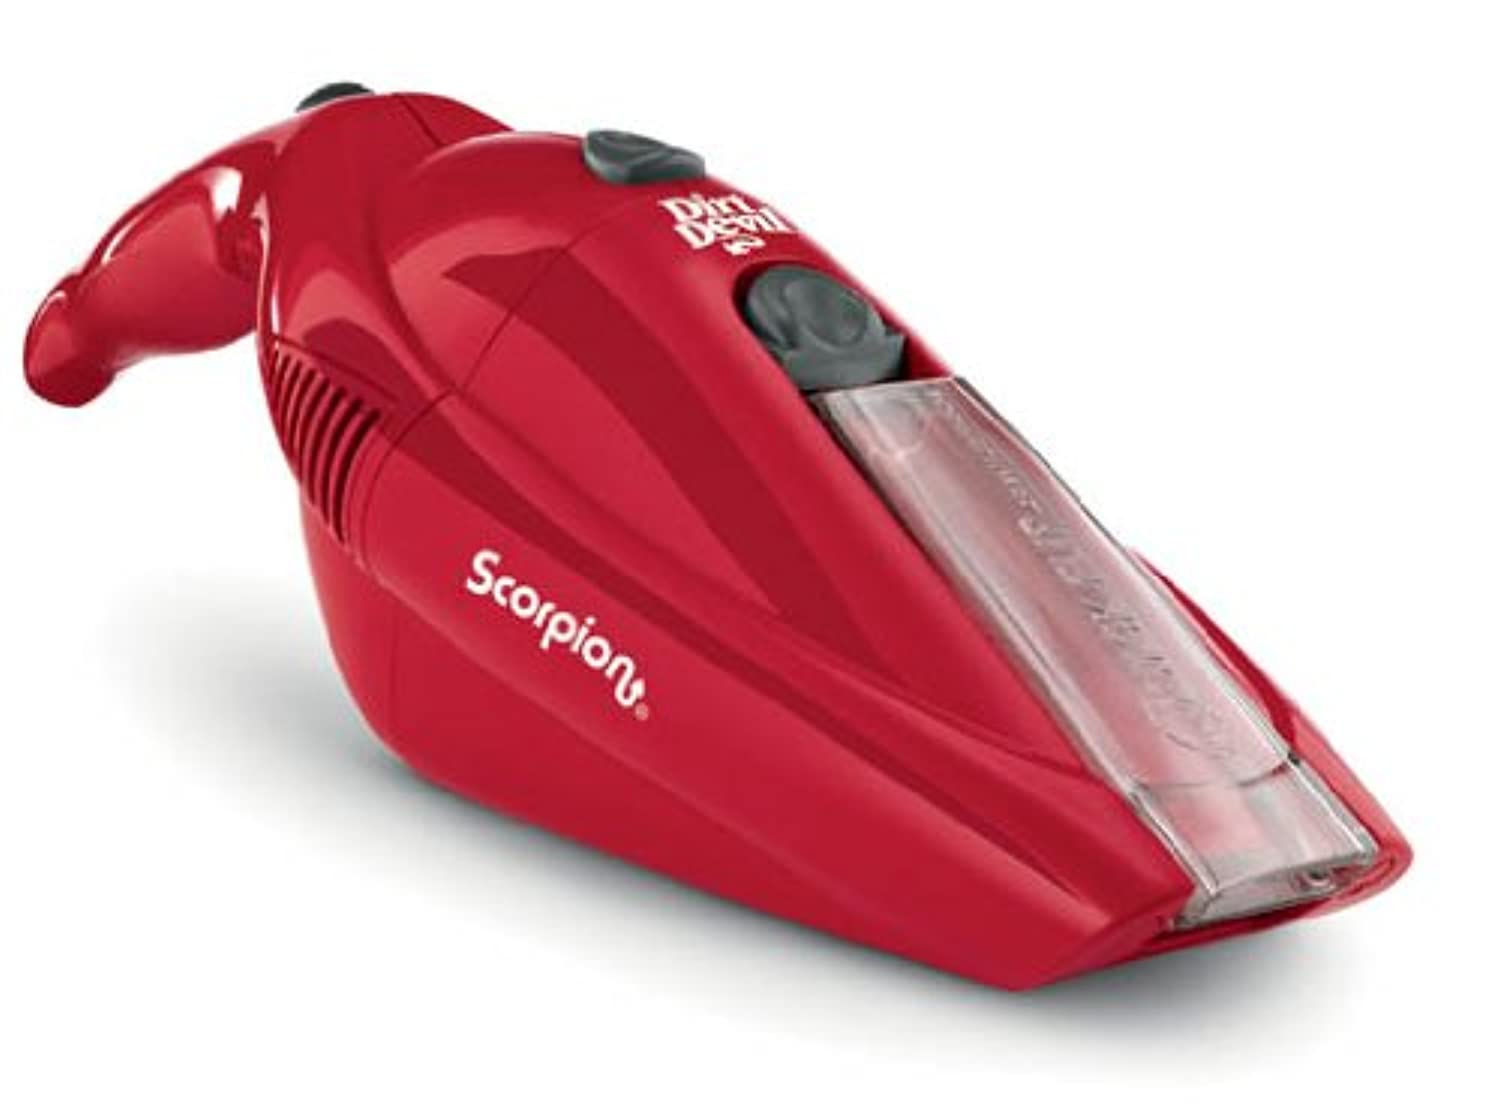 Dirt Devil Scorpion 6.0 V Cordless Bagless Handheld Vacuum bd10050red、by Royalアプライアンス